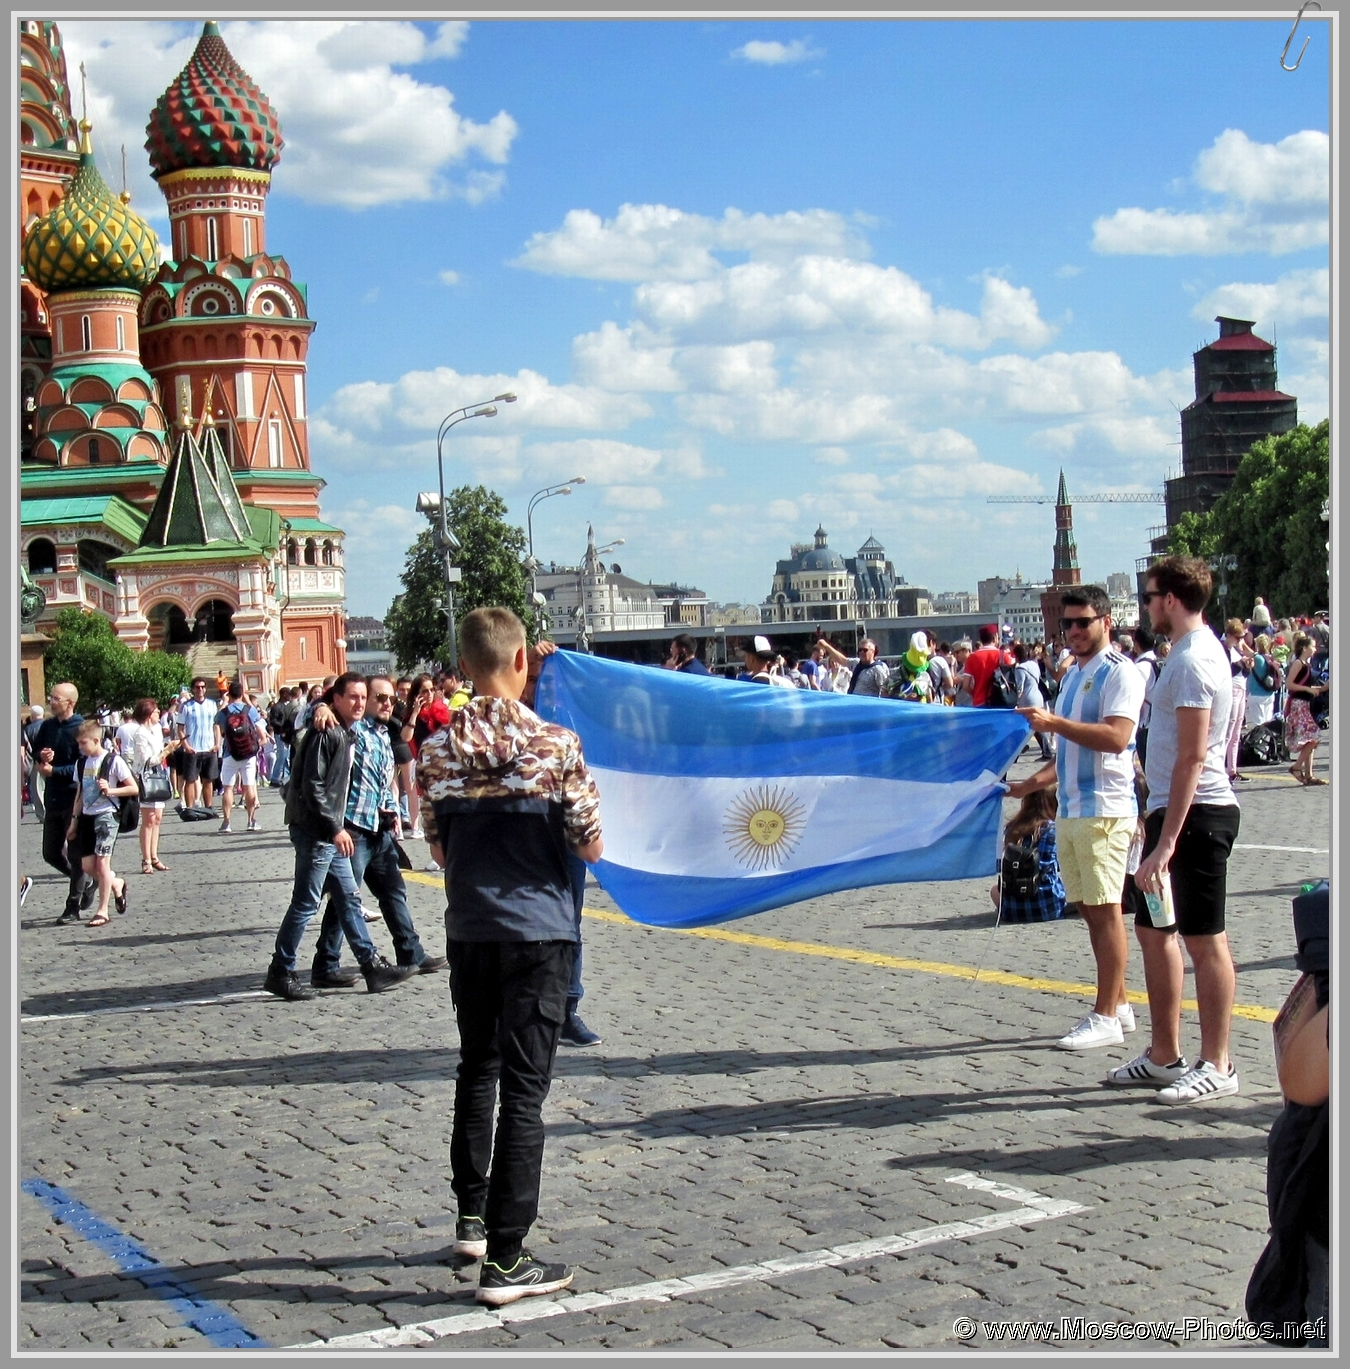 2018 FIFA World Cup. Football fans on Red Square in Moscow.